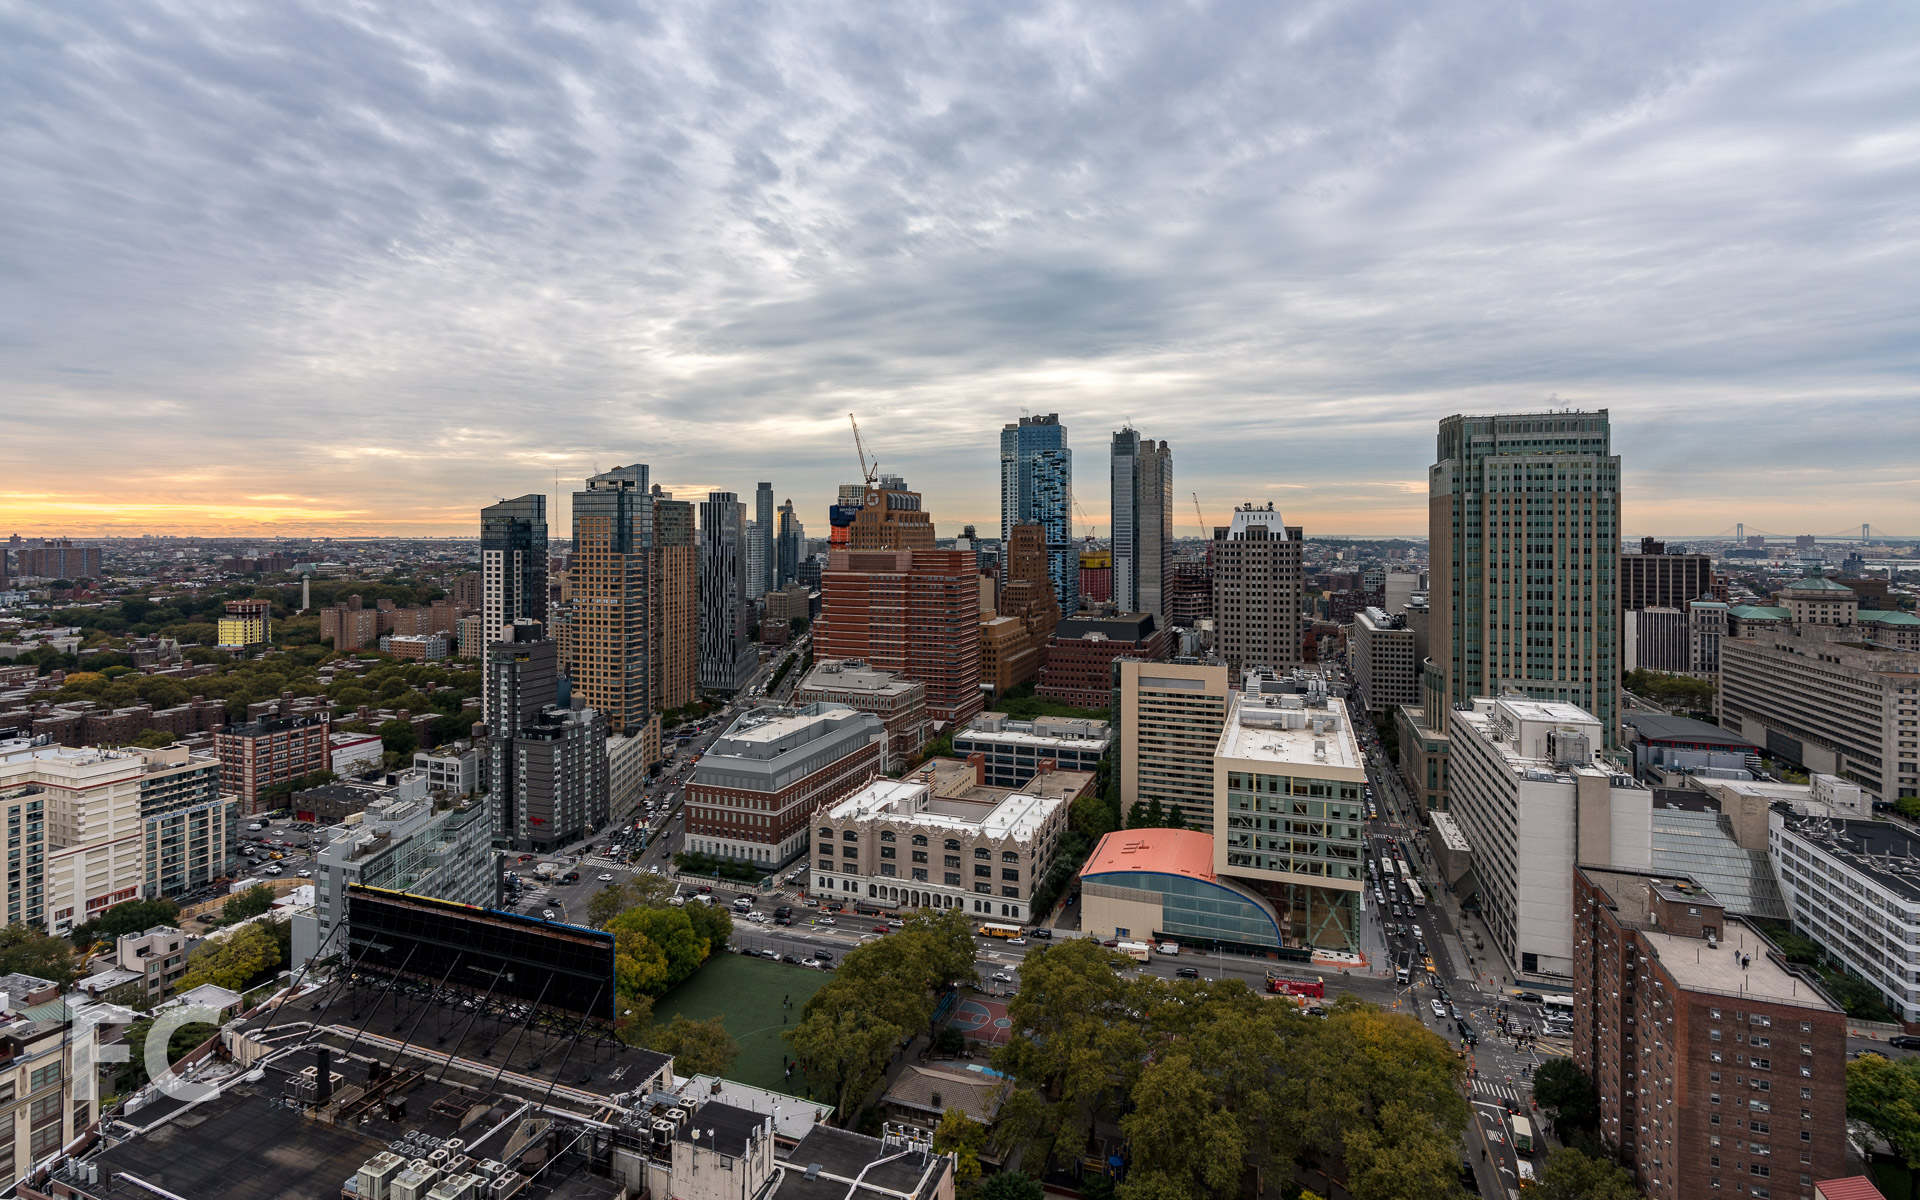 View towards Downtown Brooklyn from the residential amenity terrace.